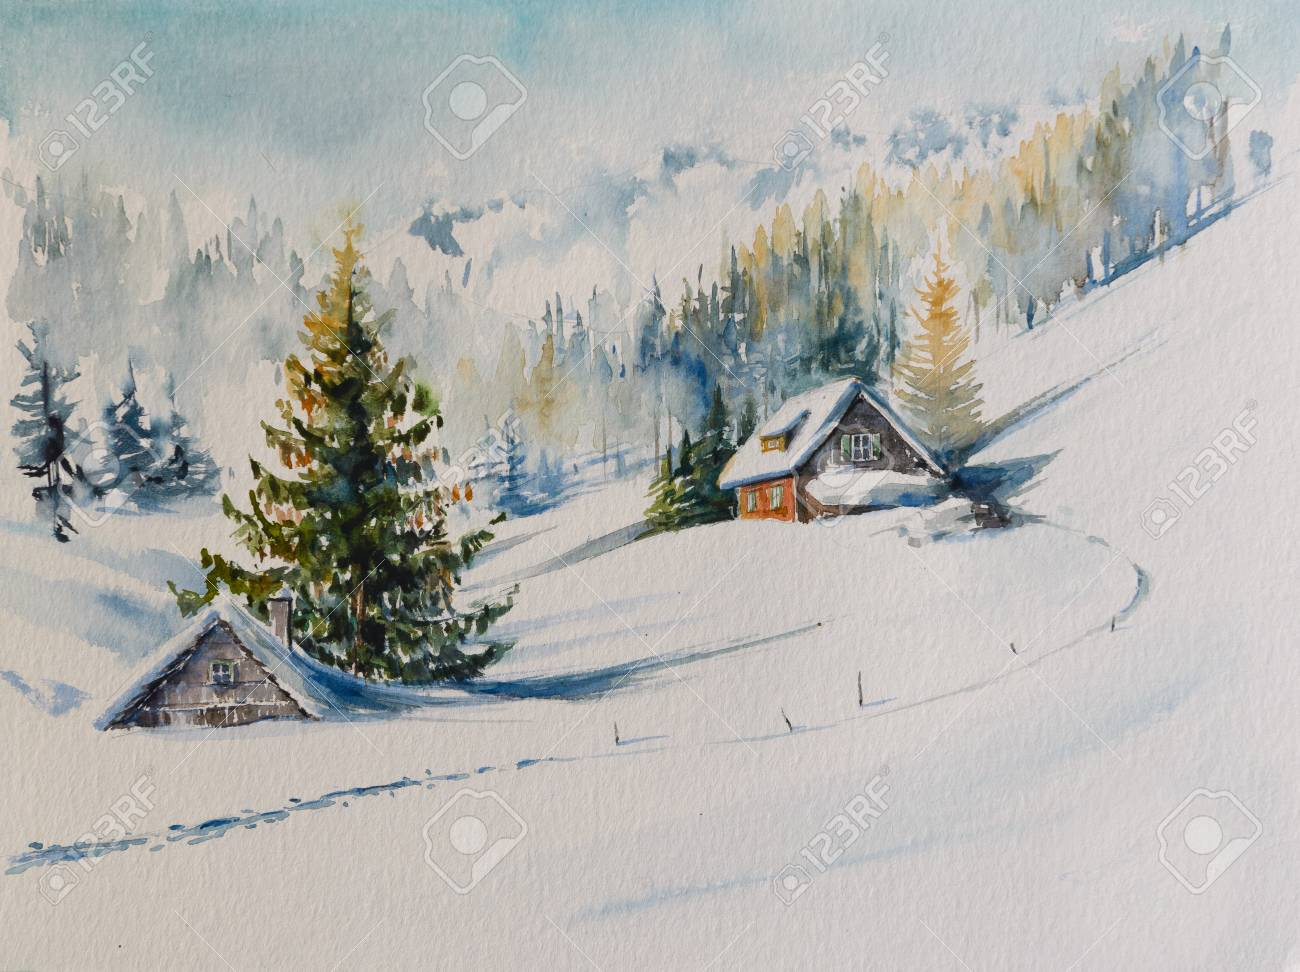 Watercolors original painting of winter mountain landscape and houses covered with snow. - 110981884